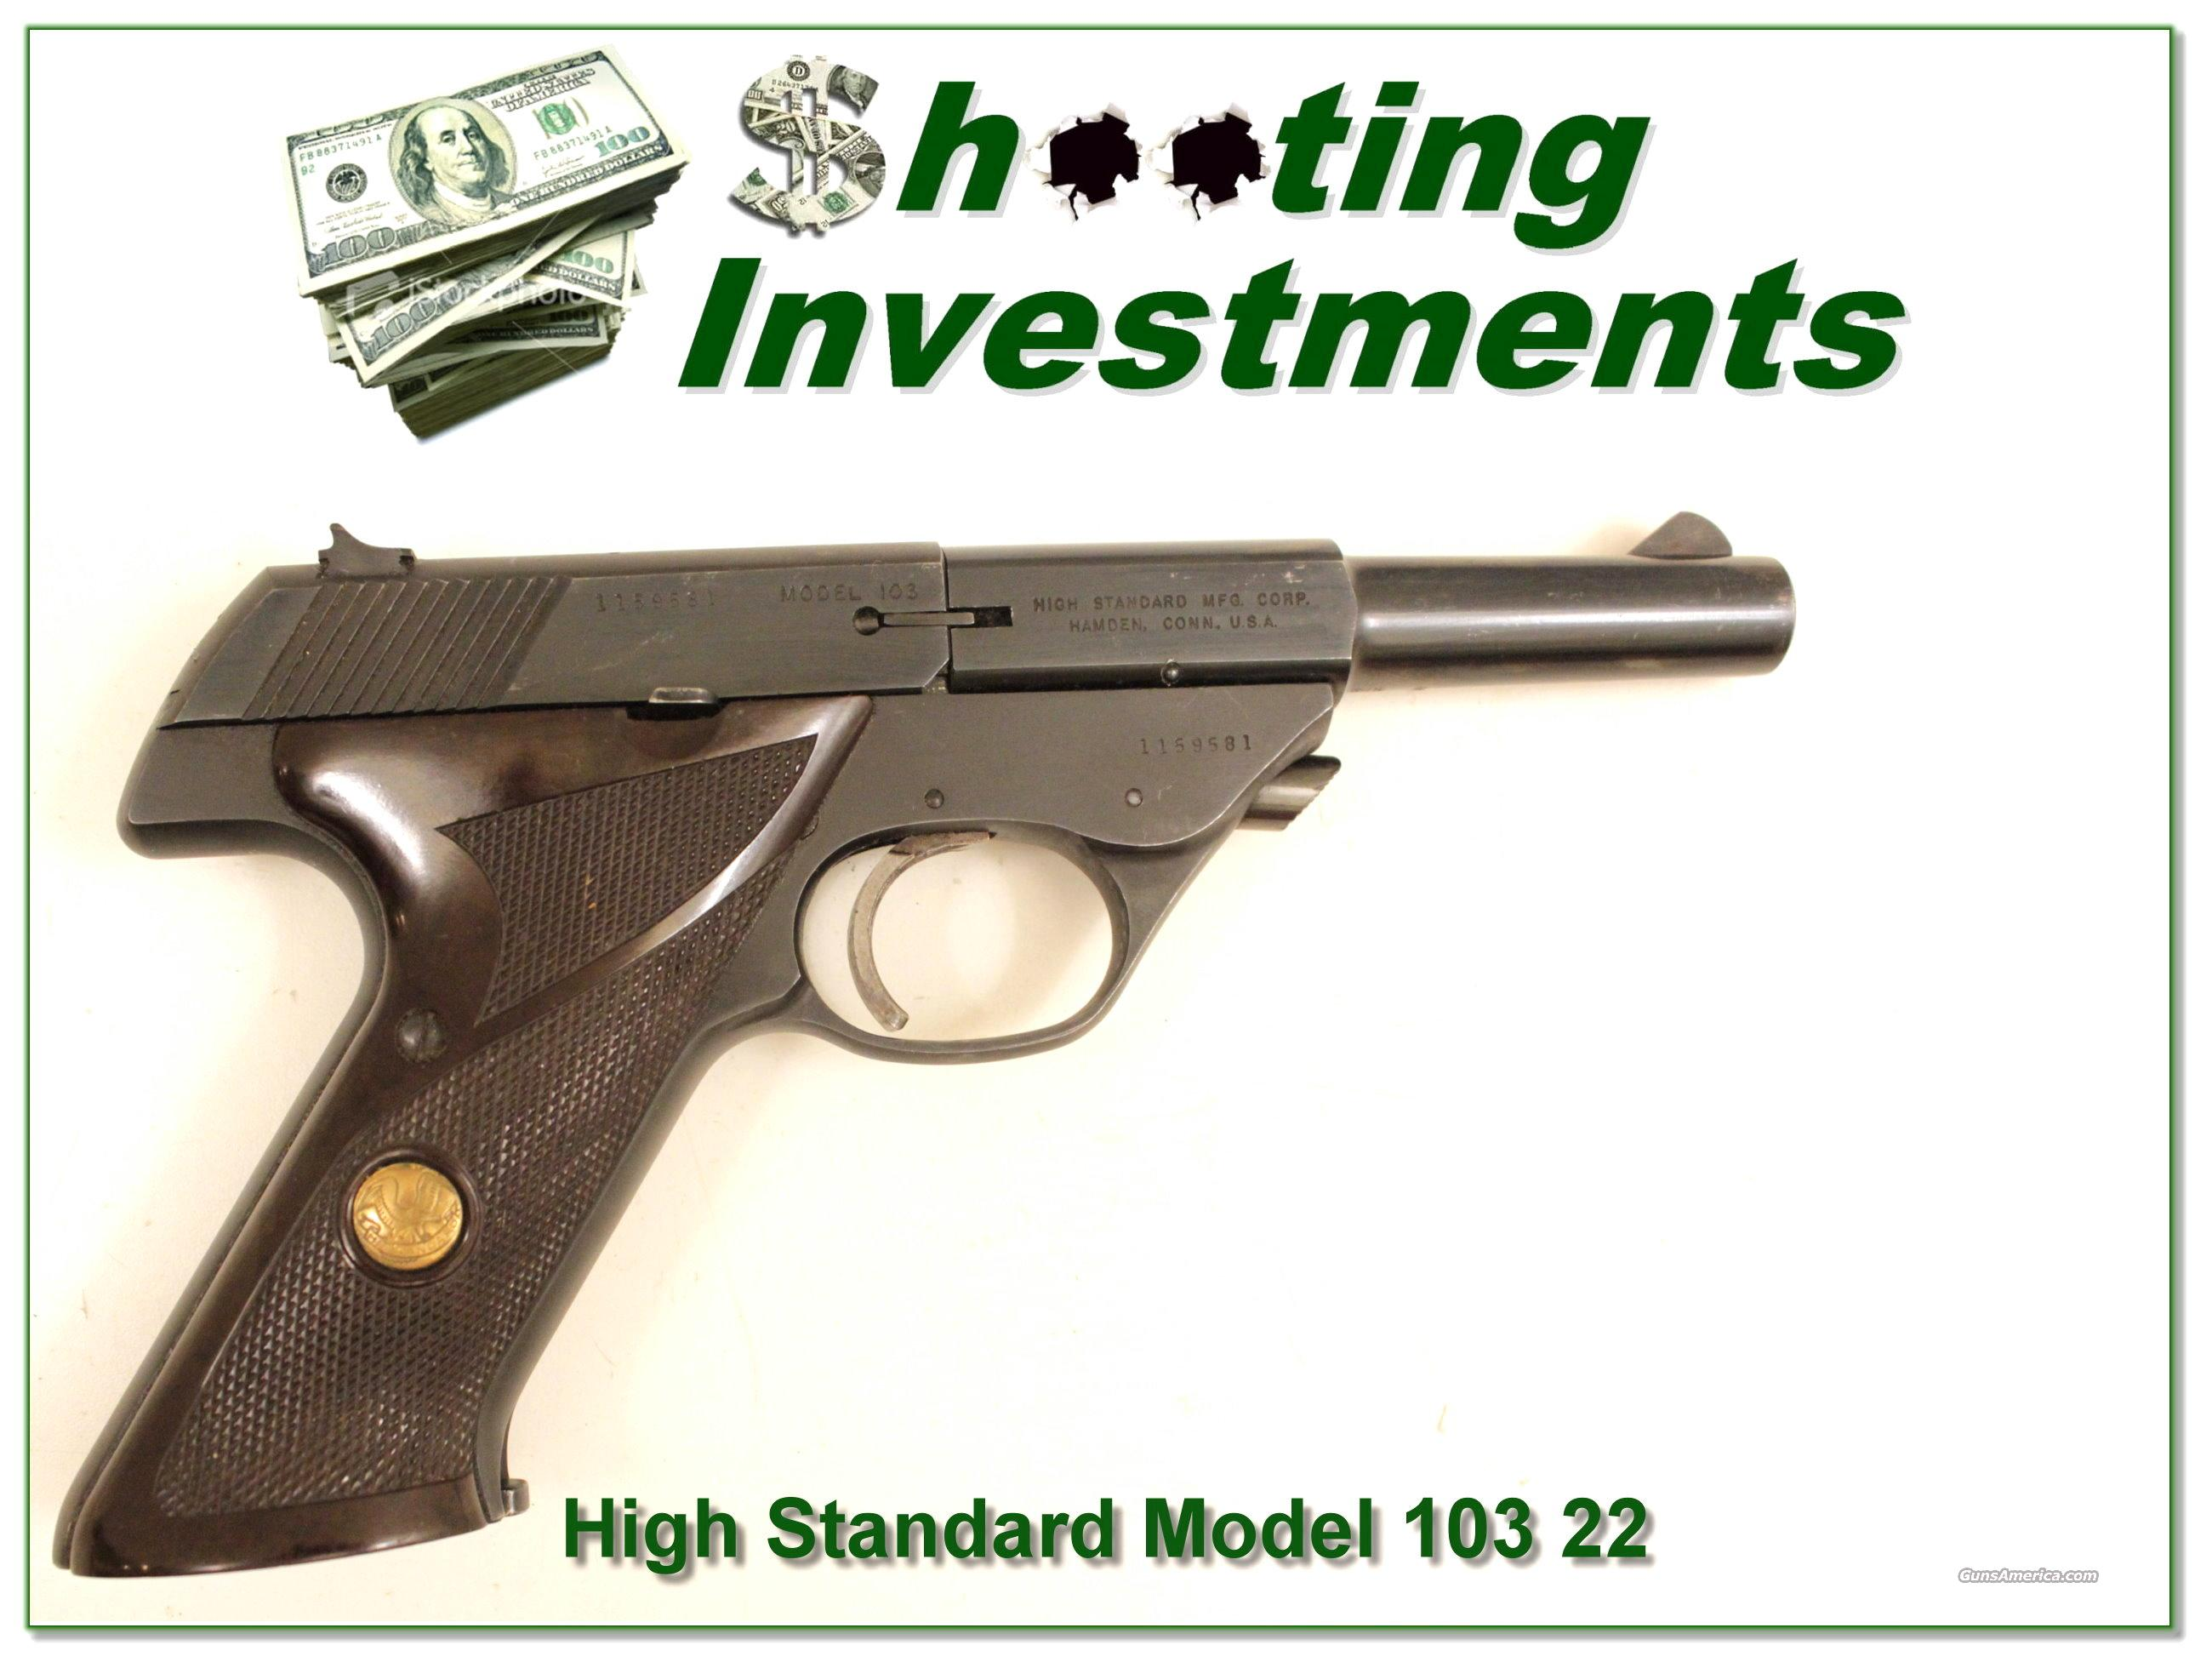 High Standard Sport King Model 103 22 LR  Guns > Pistols > High Standard Pistols